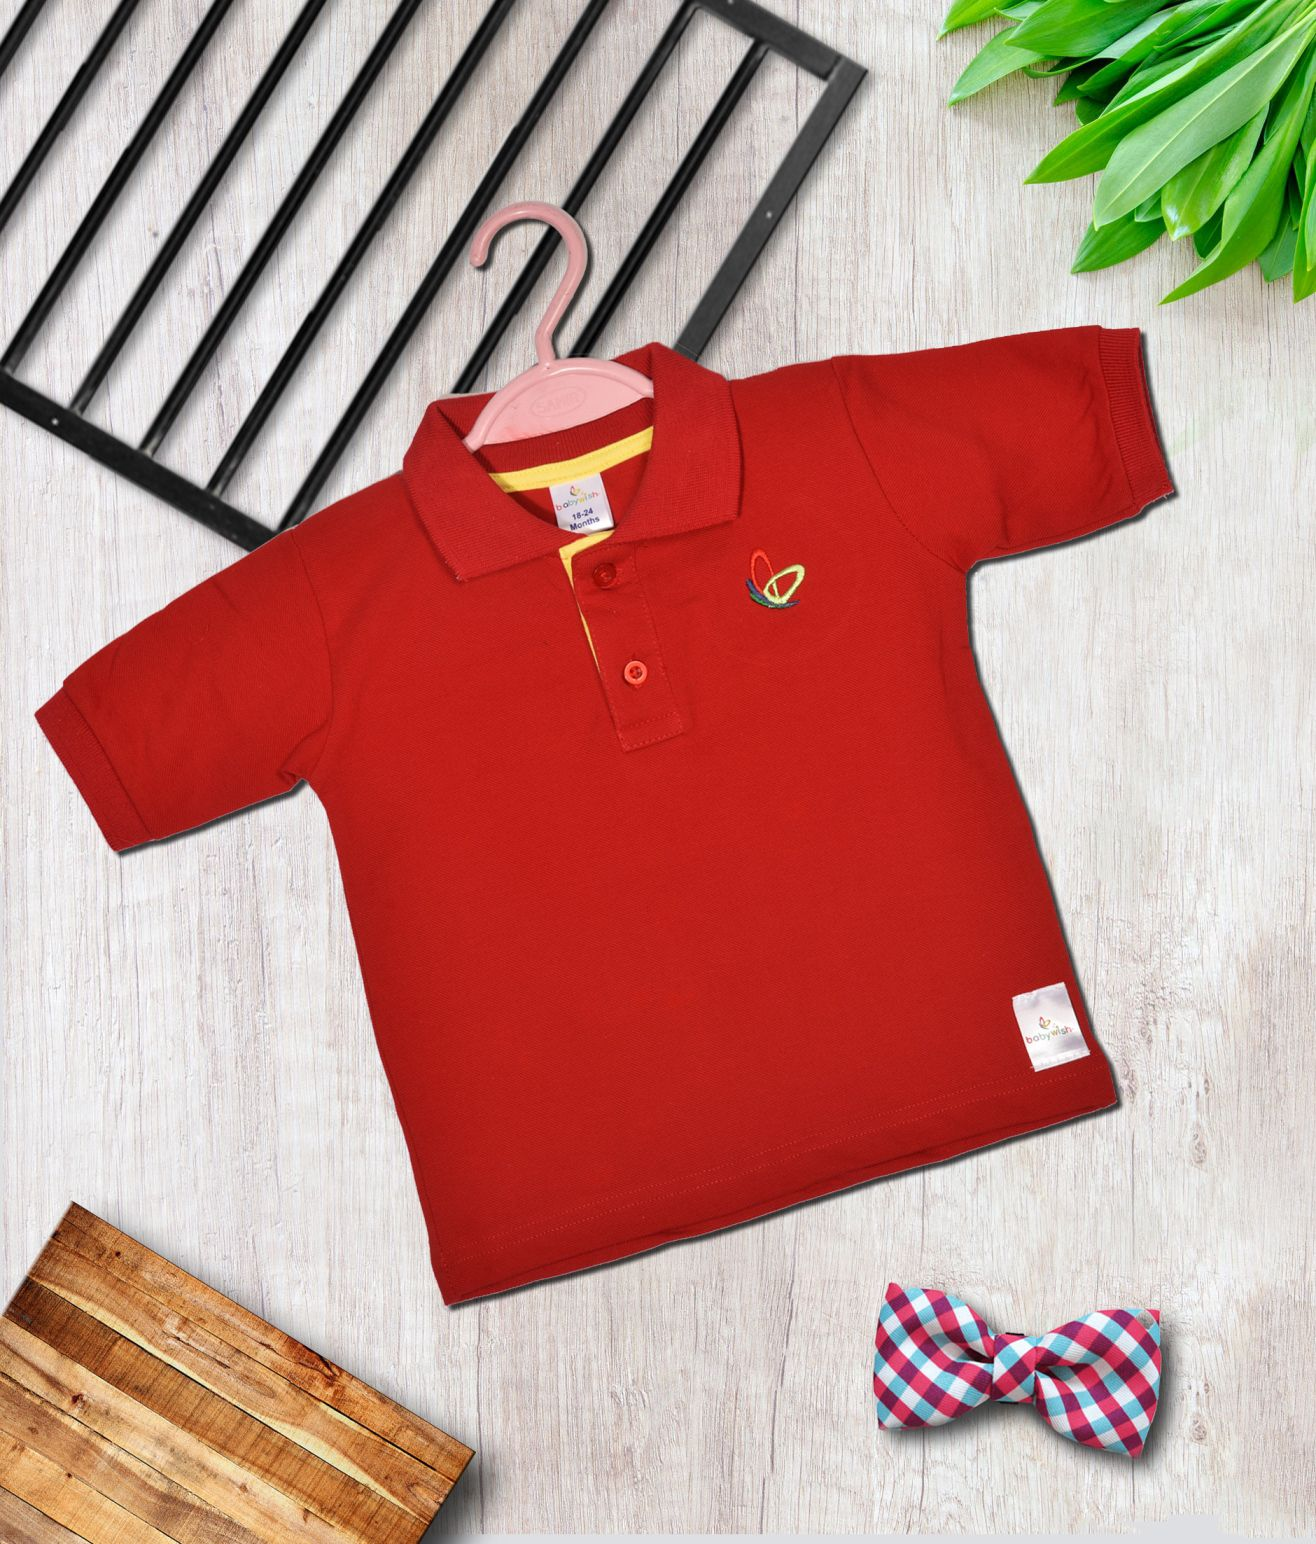 636ea9e6b65 2) Babywish Newborn Toddler Kids Baby Boys Girls Clothes Adorable Solid Red  Unisex Causal Wear ...